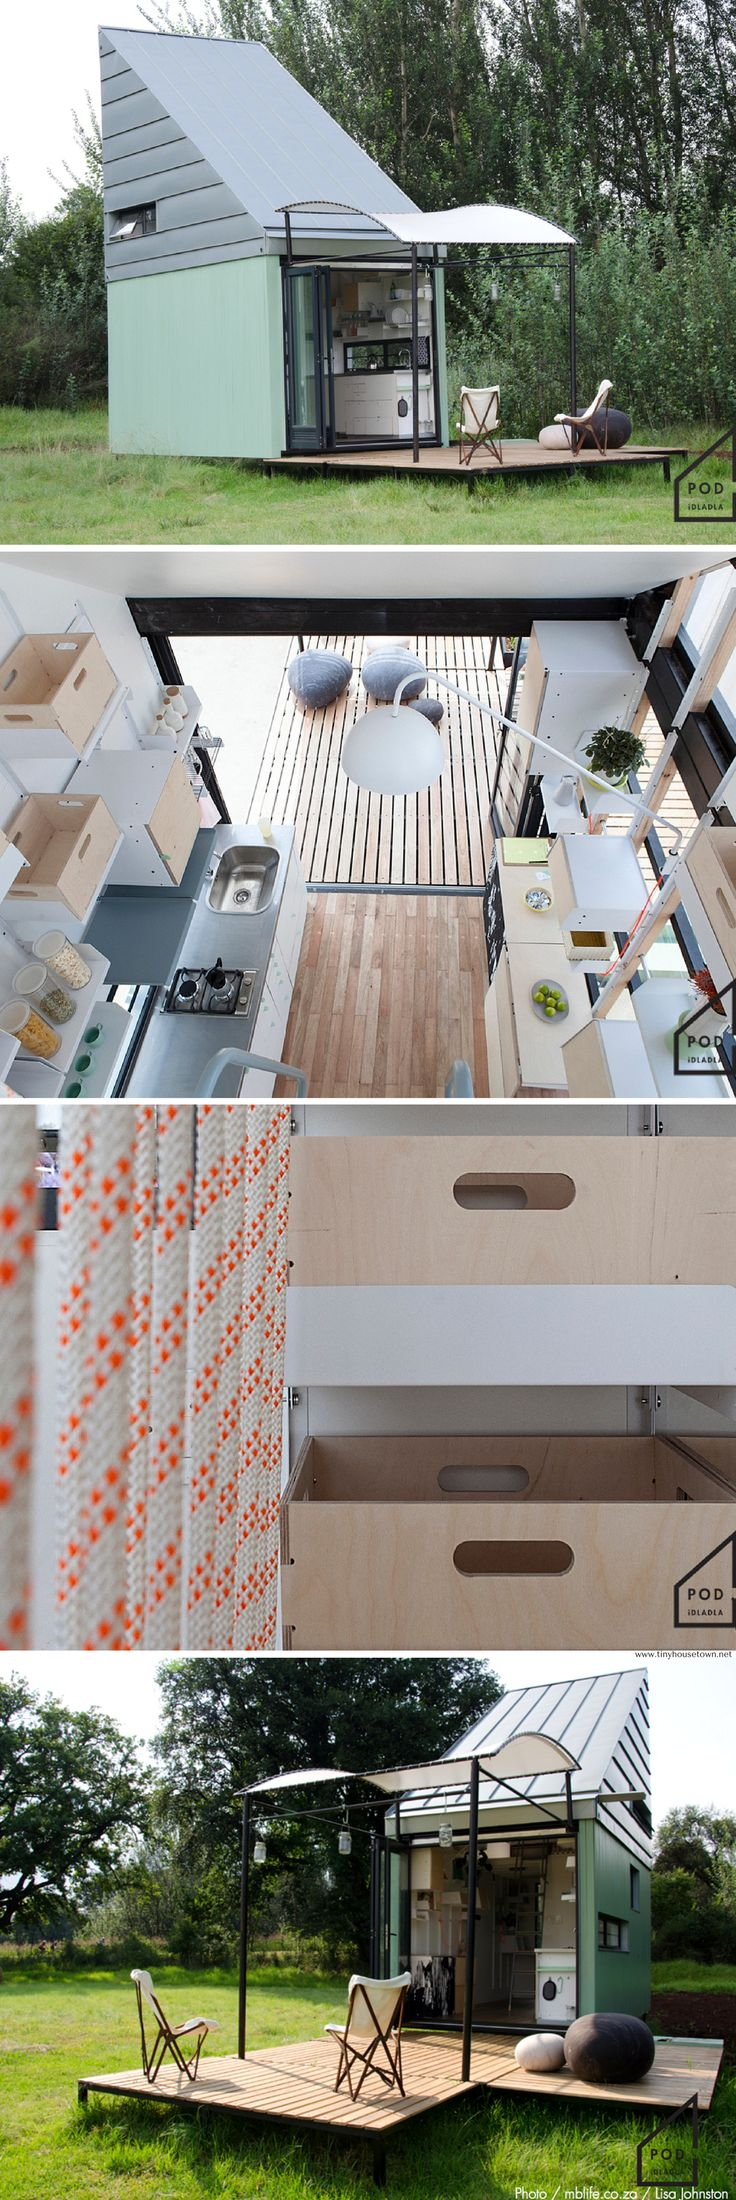 The POD-idladla: a 185 sq ft tiny house from South Africa.